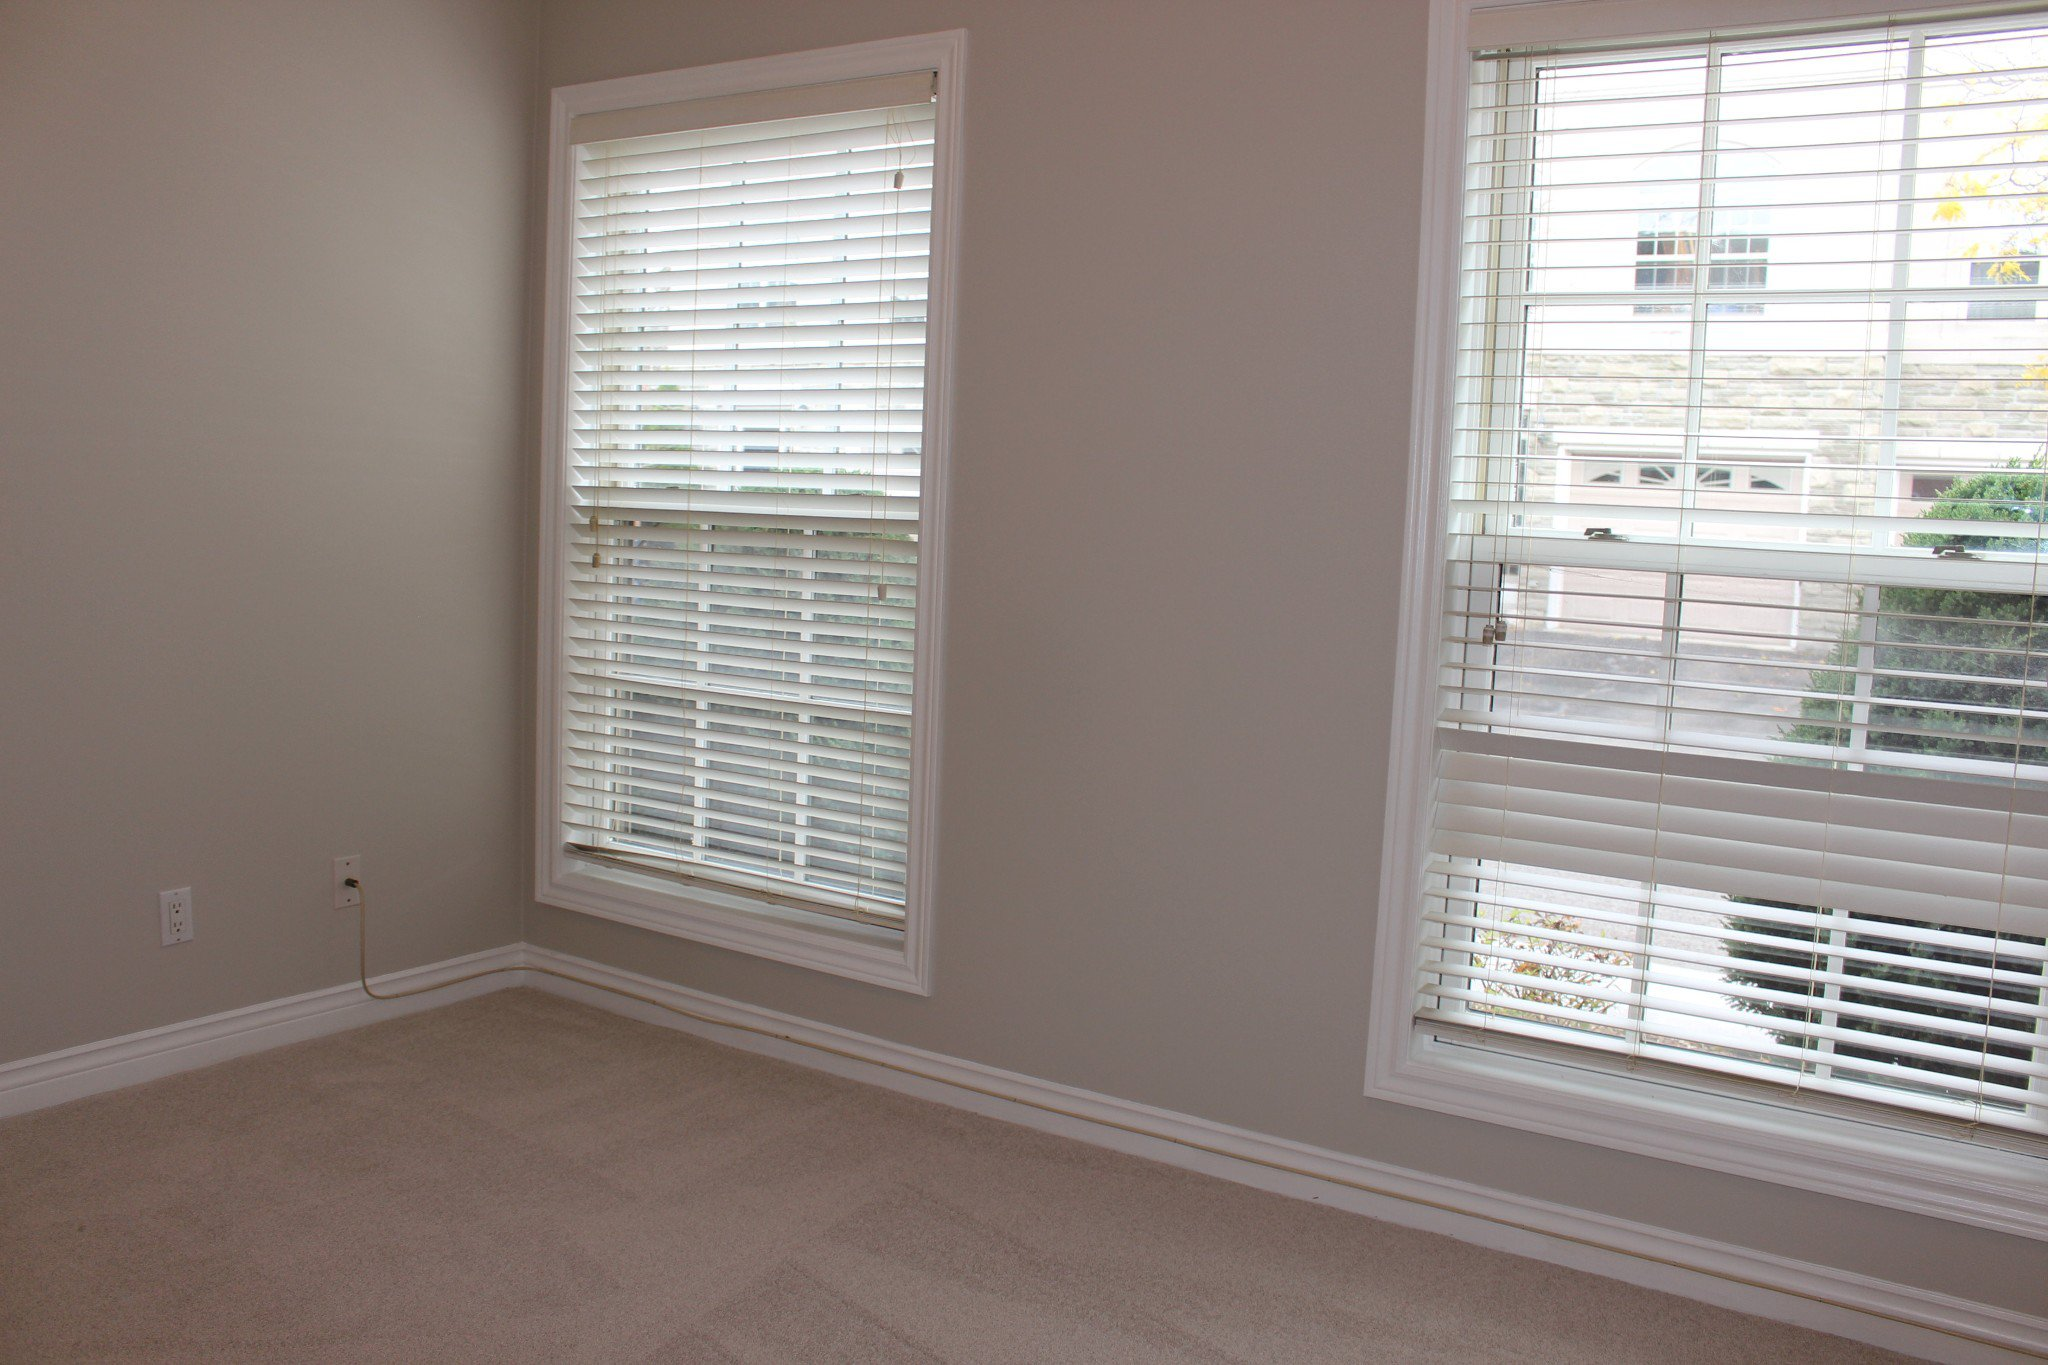 Photo 5: Photos: 102 Maria's Quay in Cobourg: Residential Attached for sale : MLS®# 230864